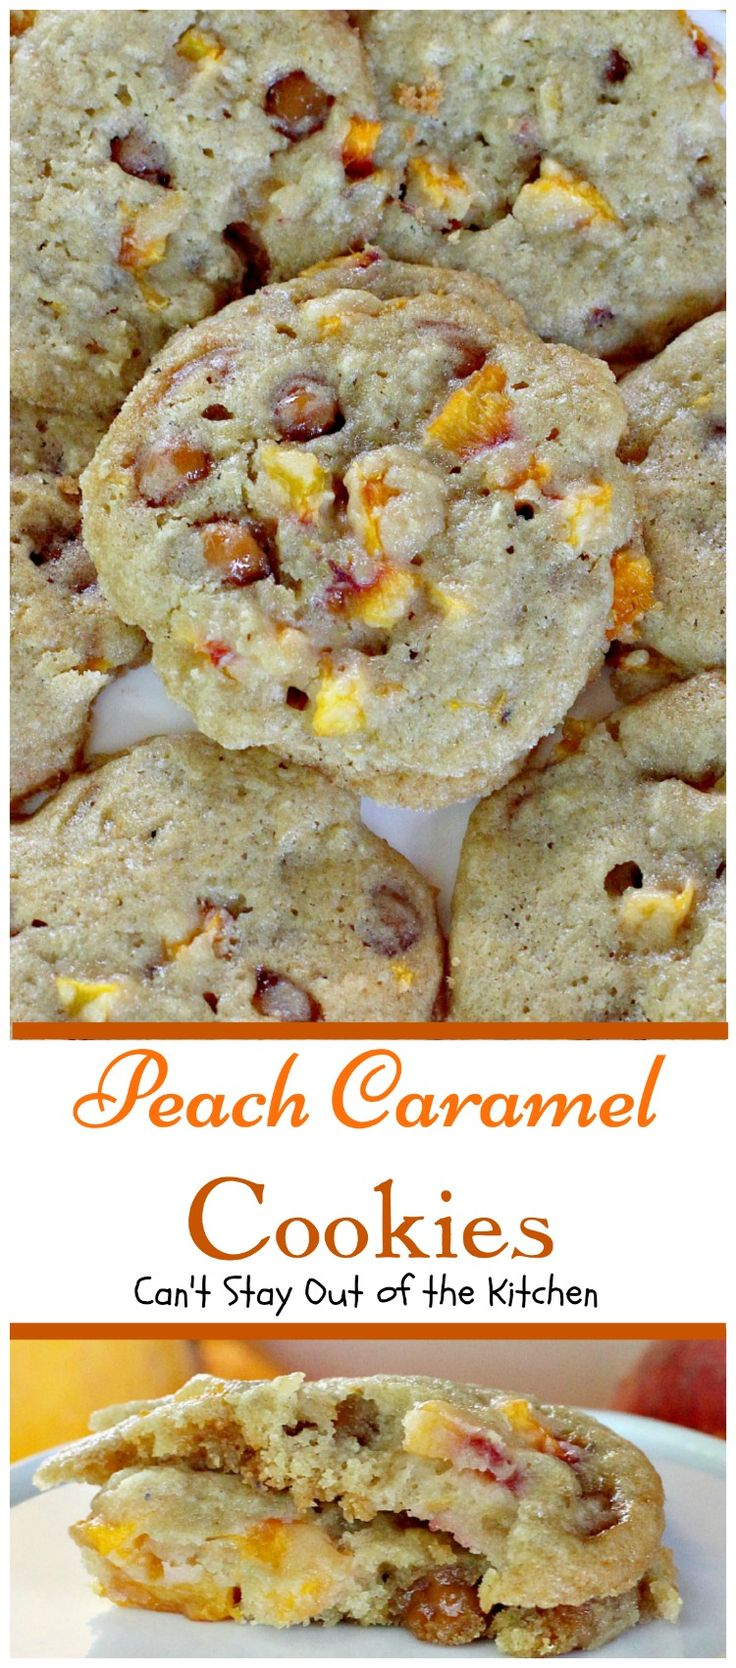 Peach Caramel Cookies | Can't Stay Out of the Kitchen | #peaches and #caramel bits combine to make this the most heavenly #cookie you will ever taste. We loved these.  #dessert